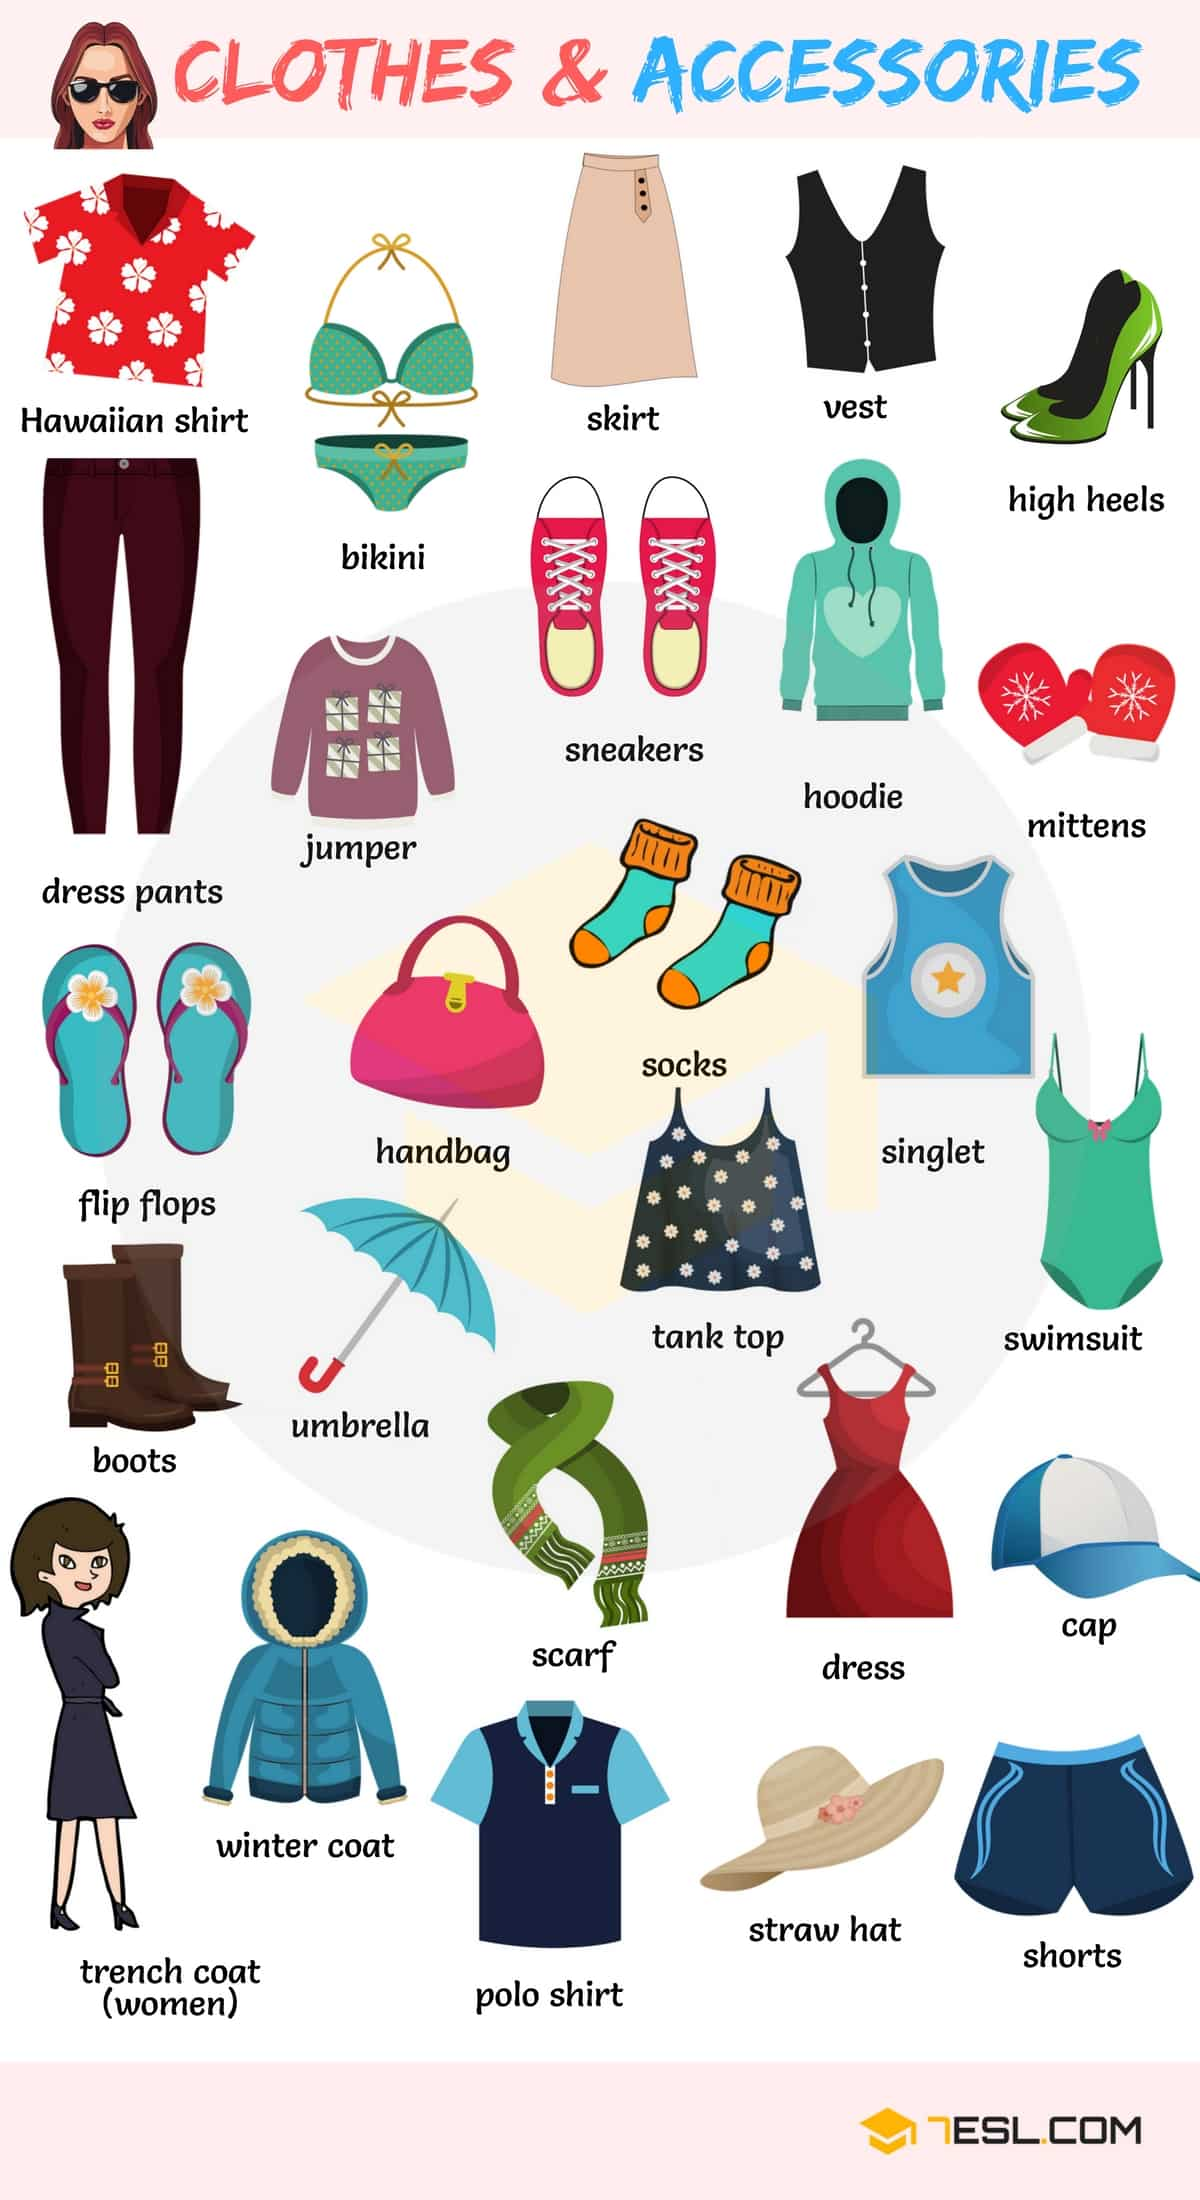 English Vocabulary For Clothing Clothes And Accessories 7 E S L